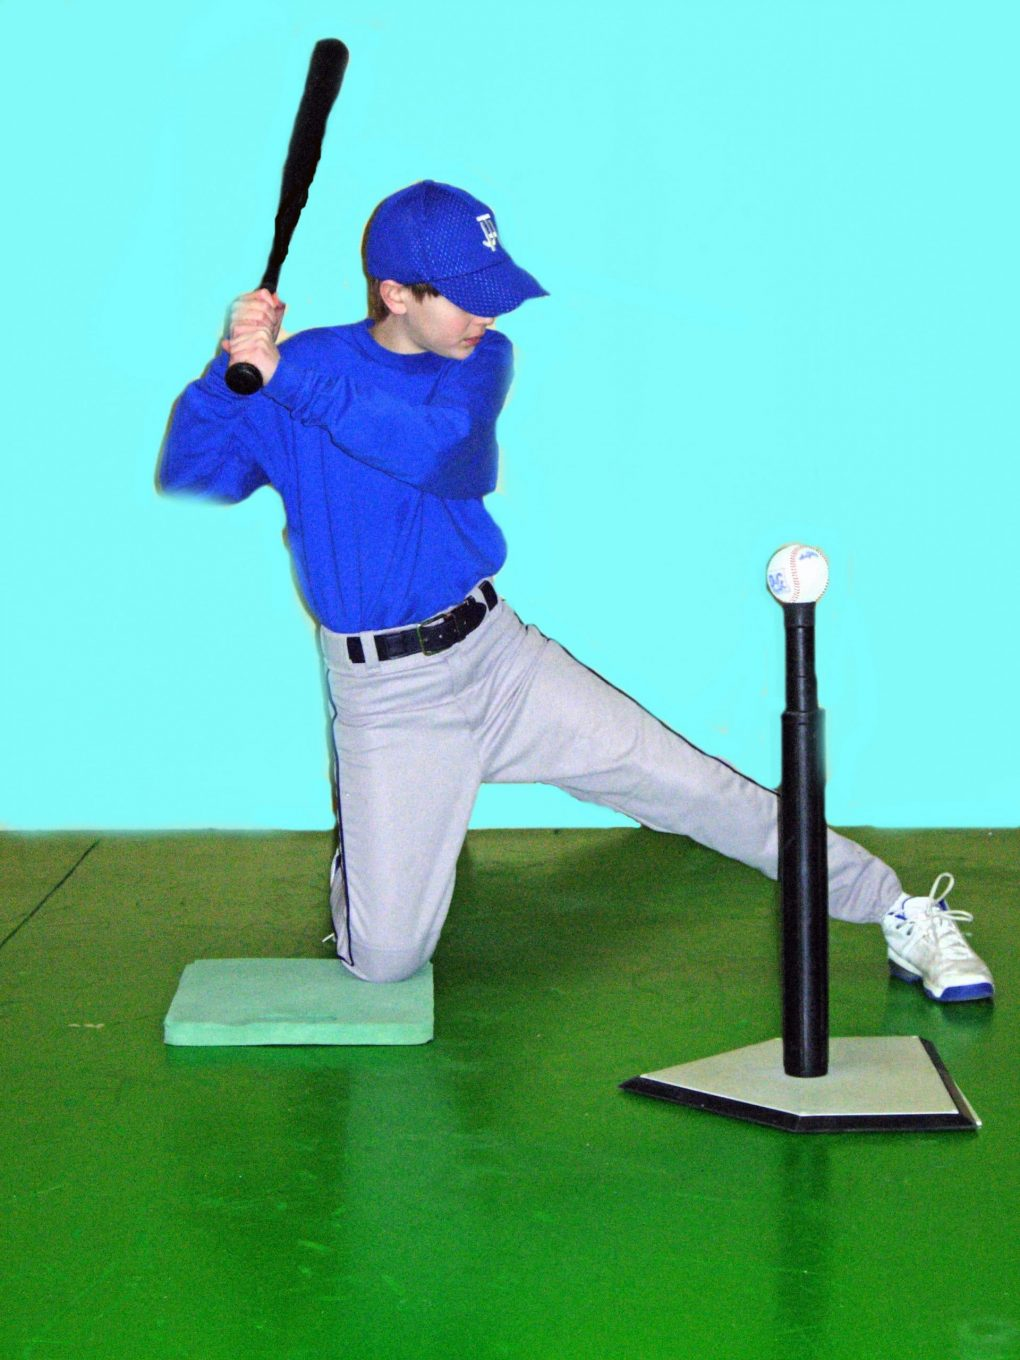 Baseball hitting drills